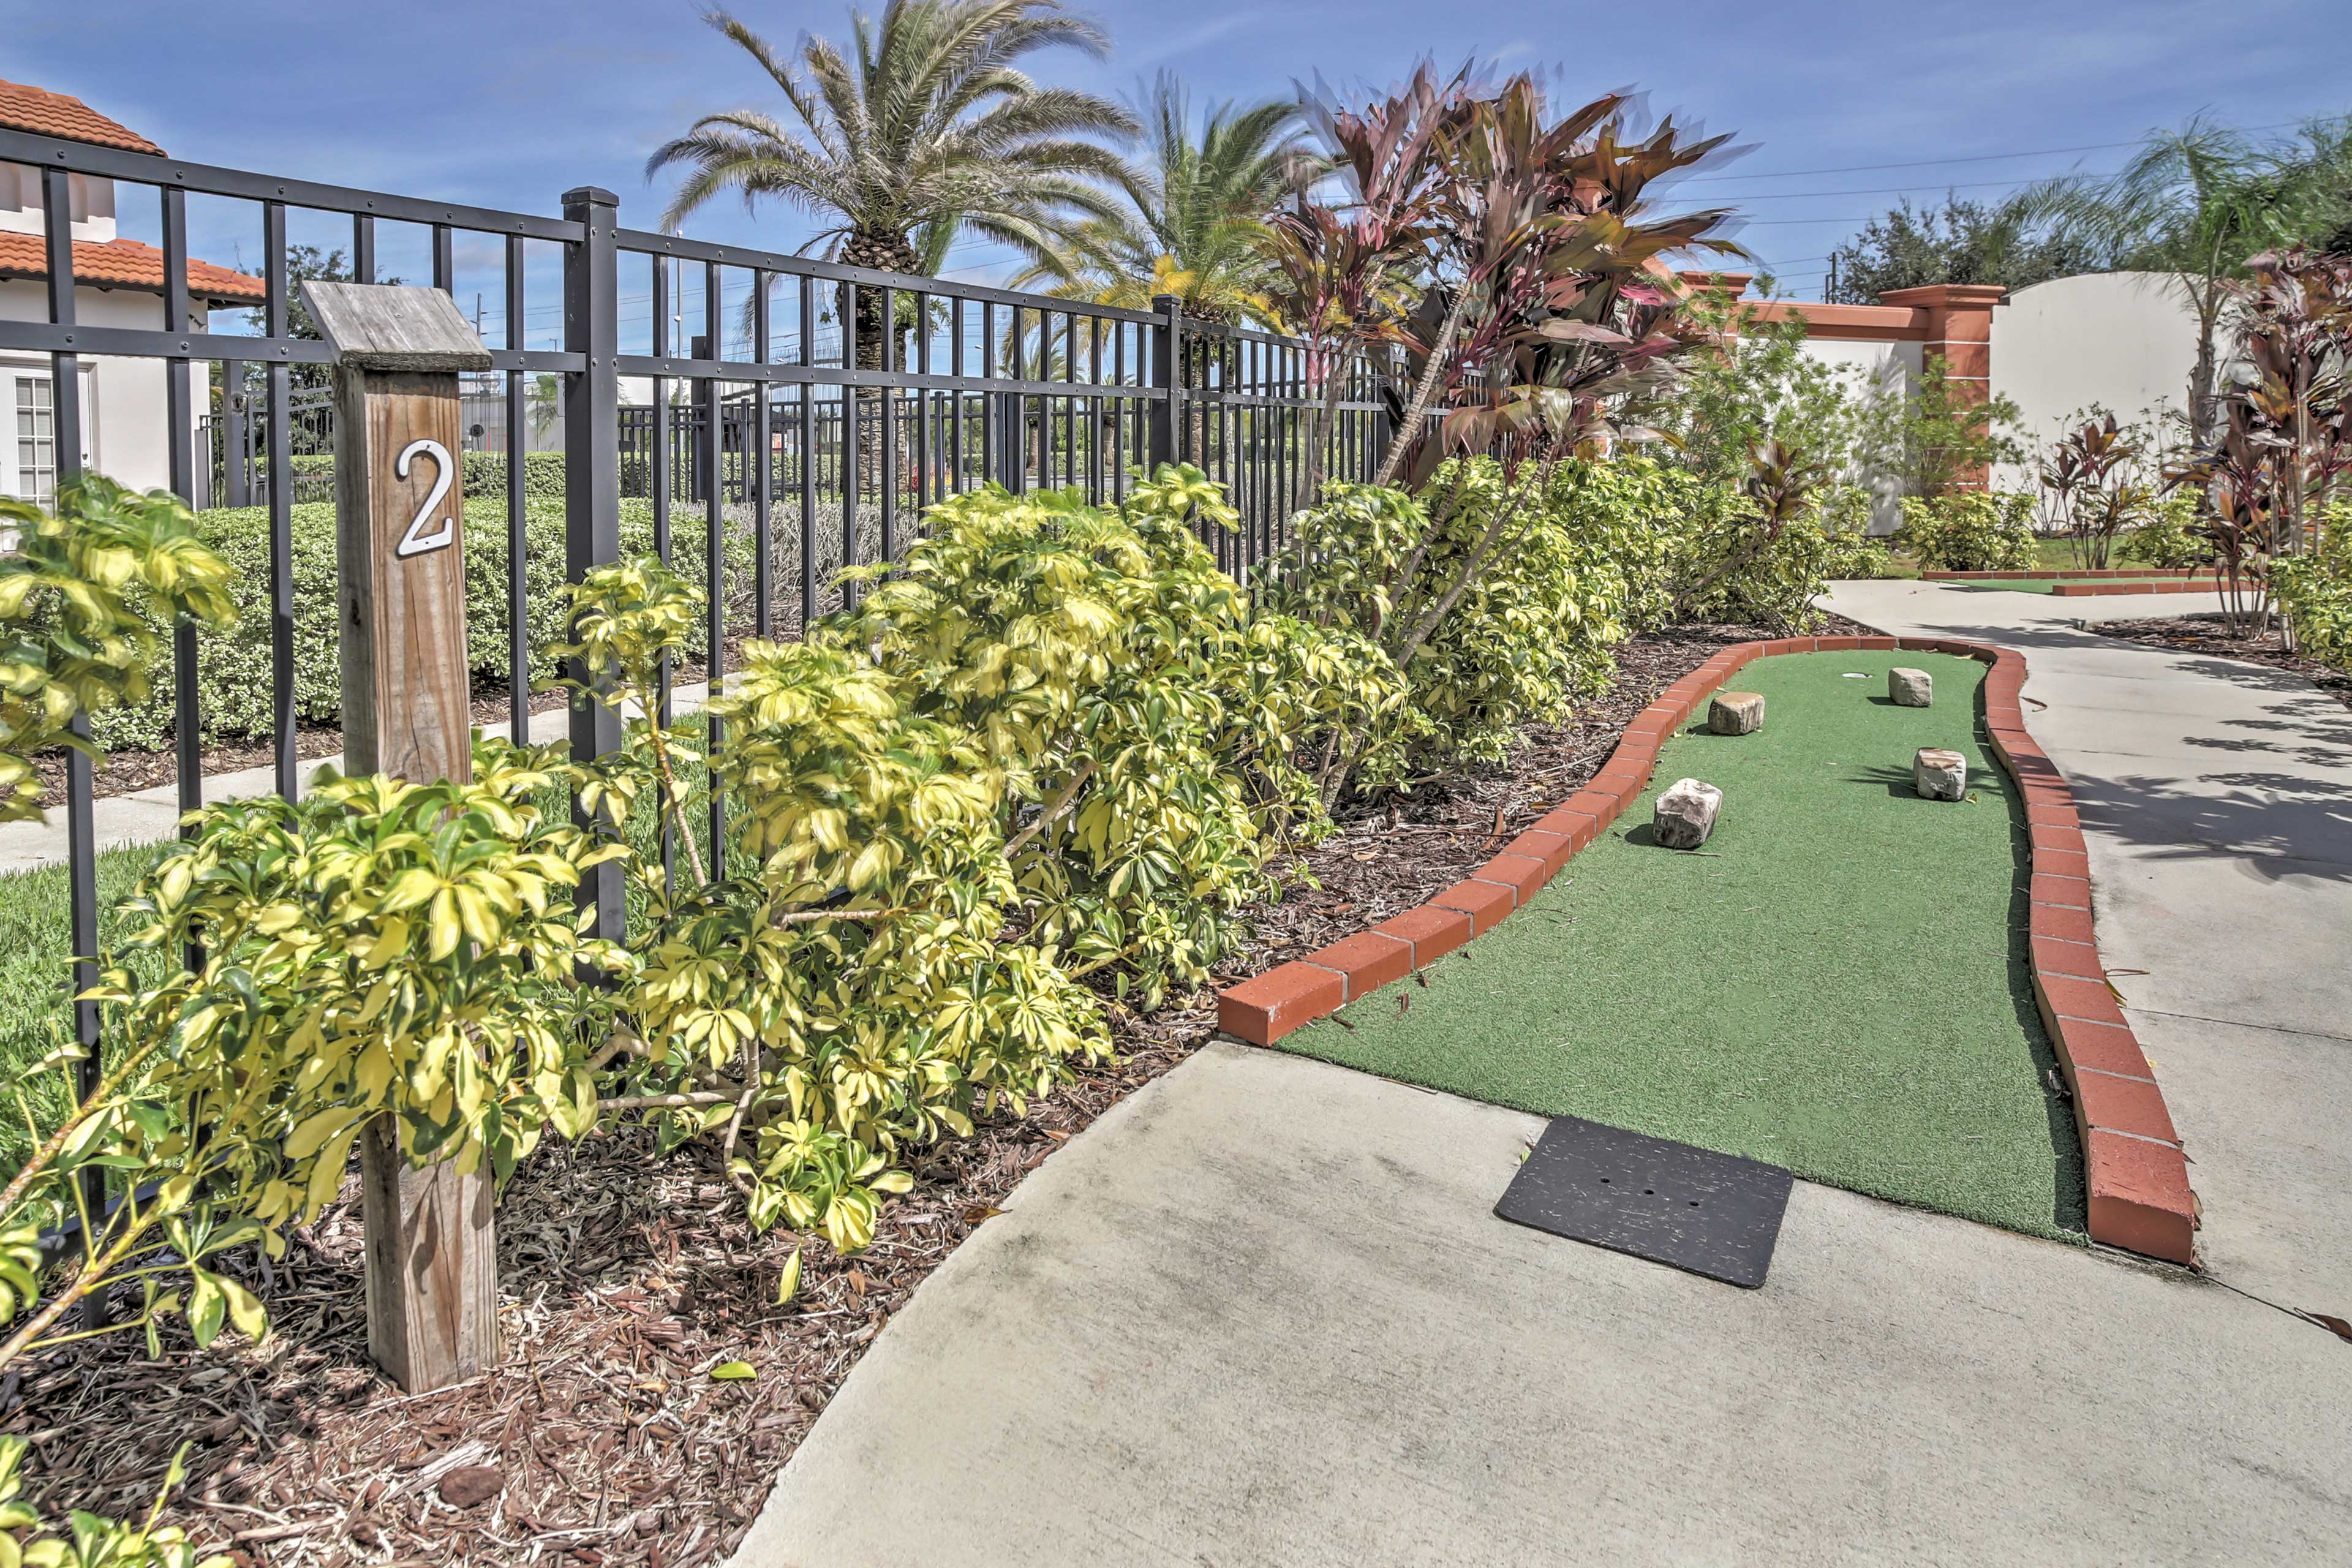 Improve your golf skills on the putt-putt course.